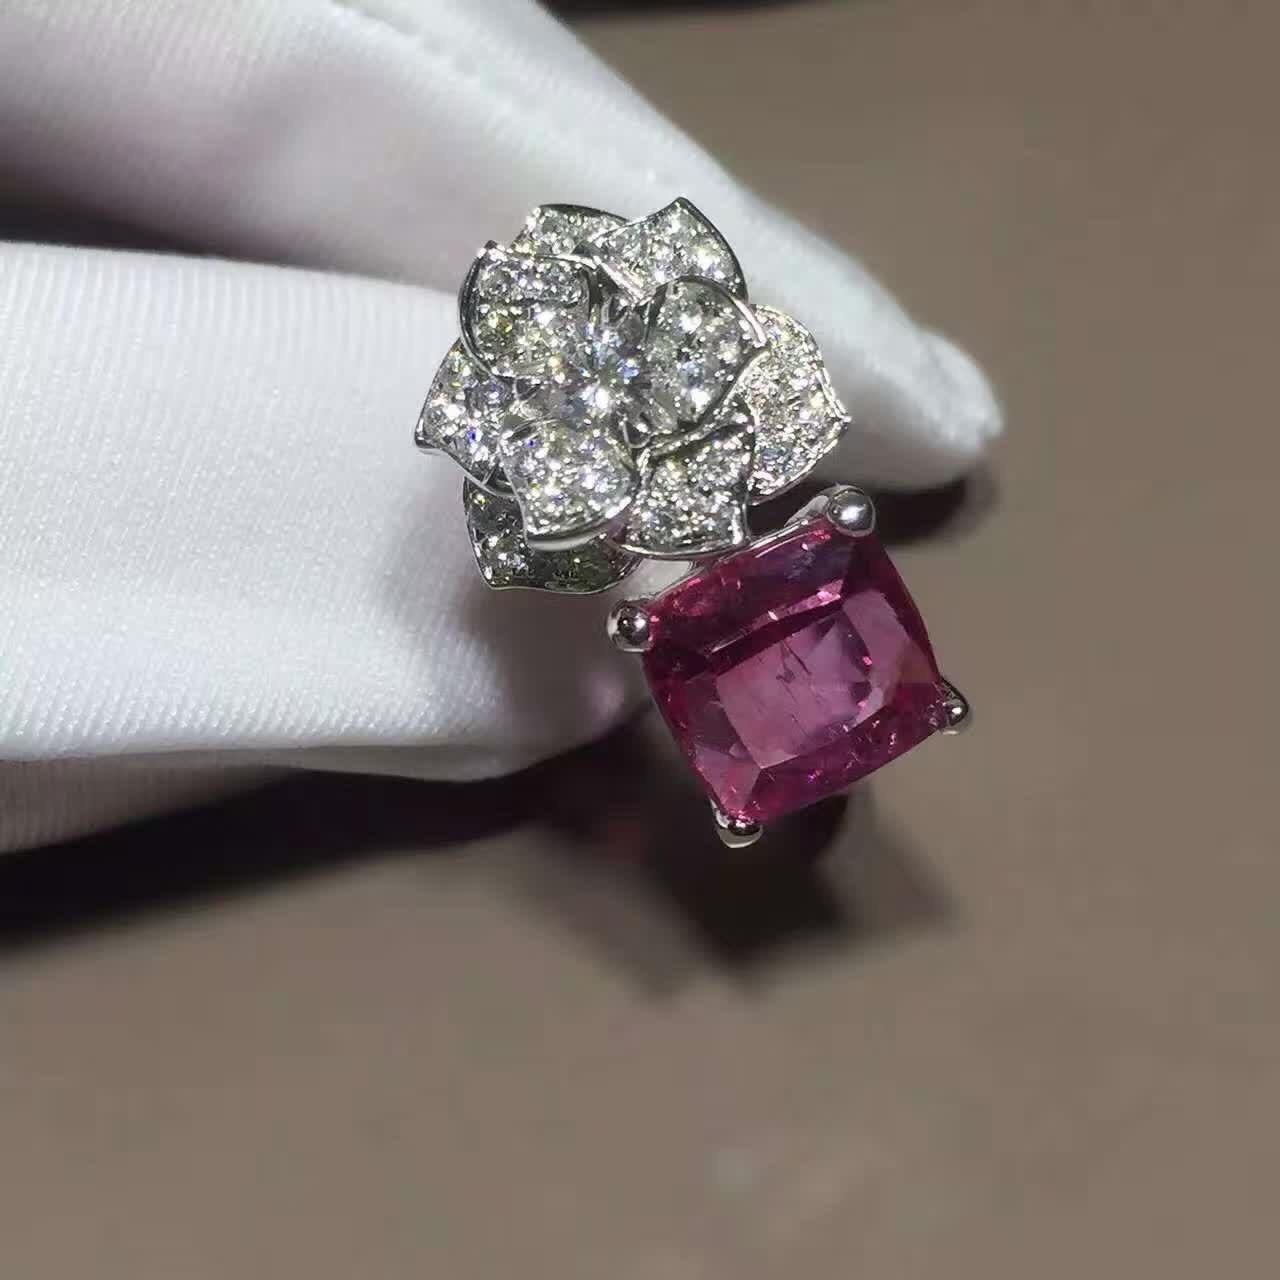 Quality 18K White Gold Piaget Rose Flower Ring G34UU600 With Cushion - Cut Pink Tourmaline for sale